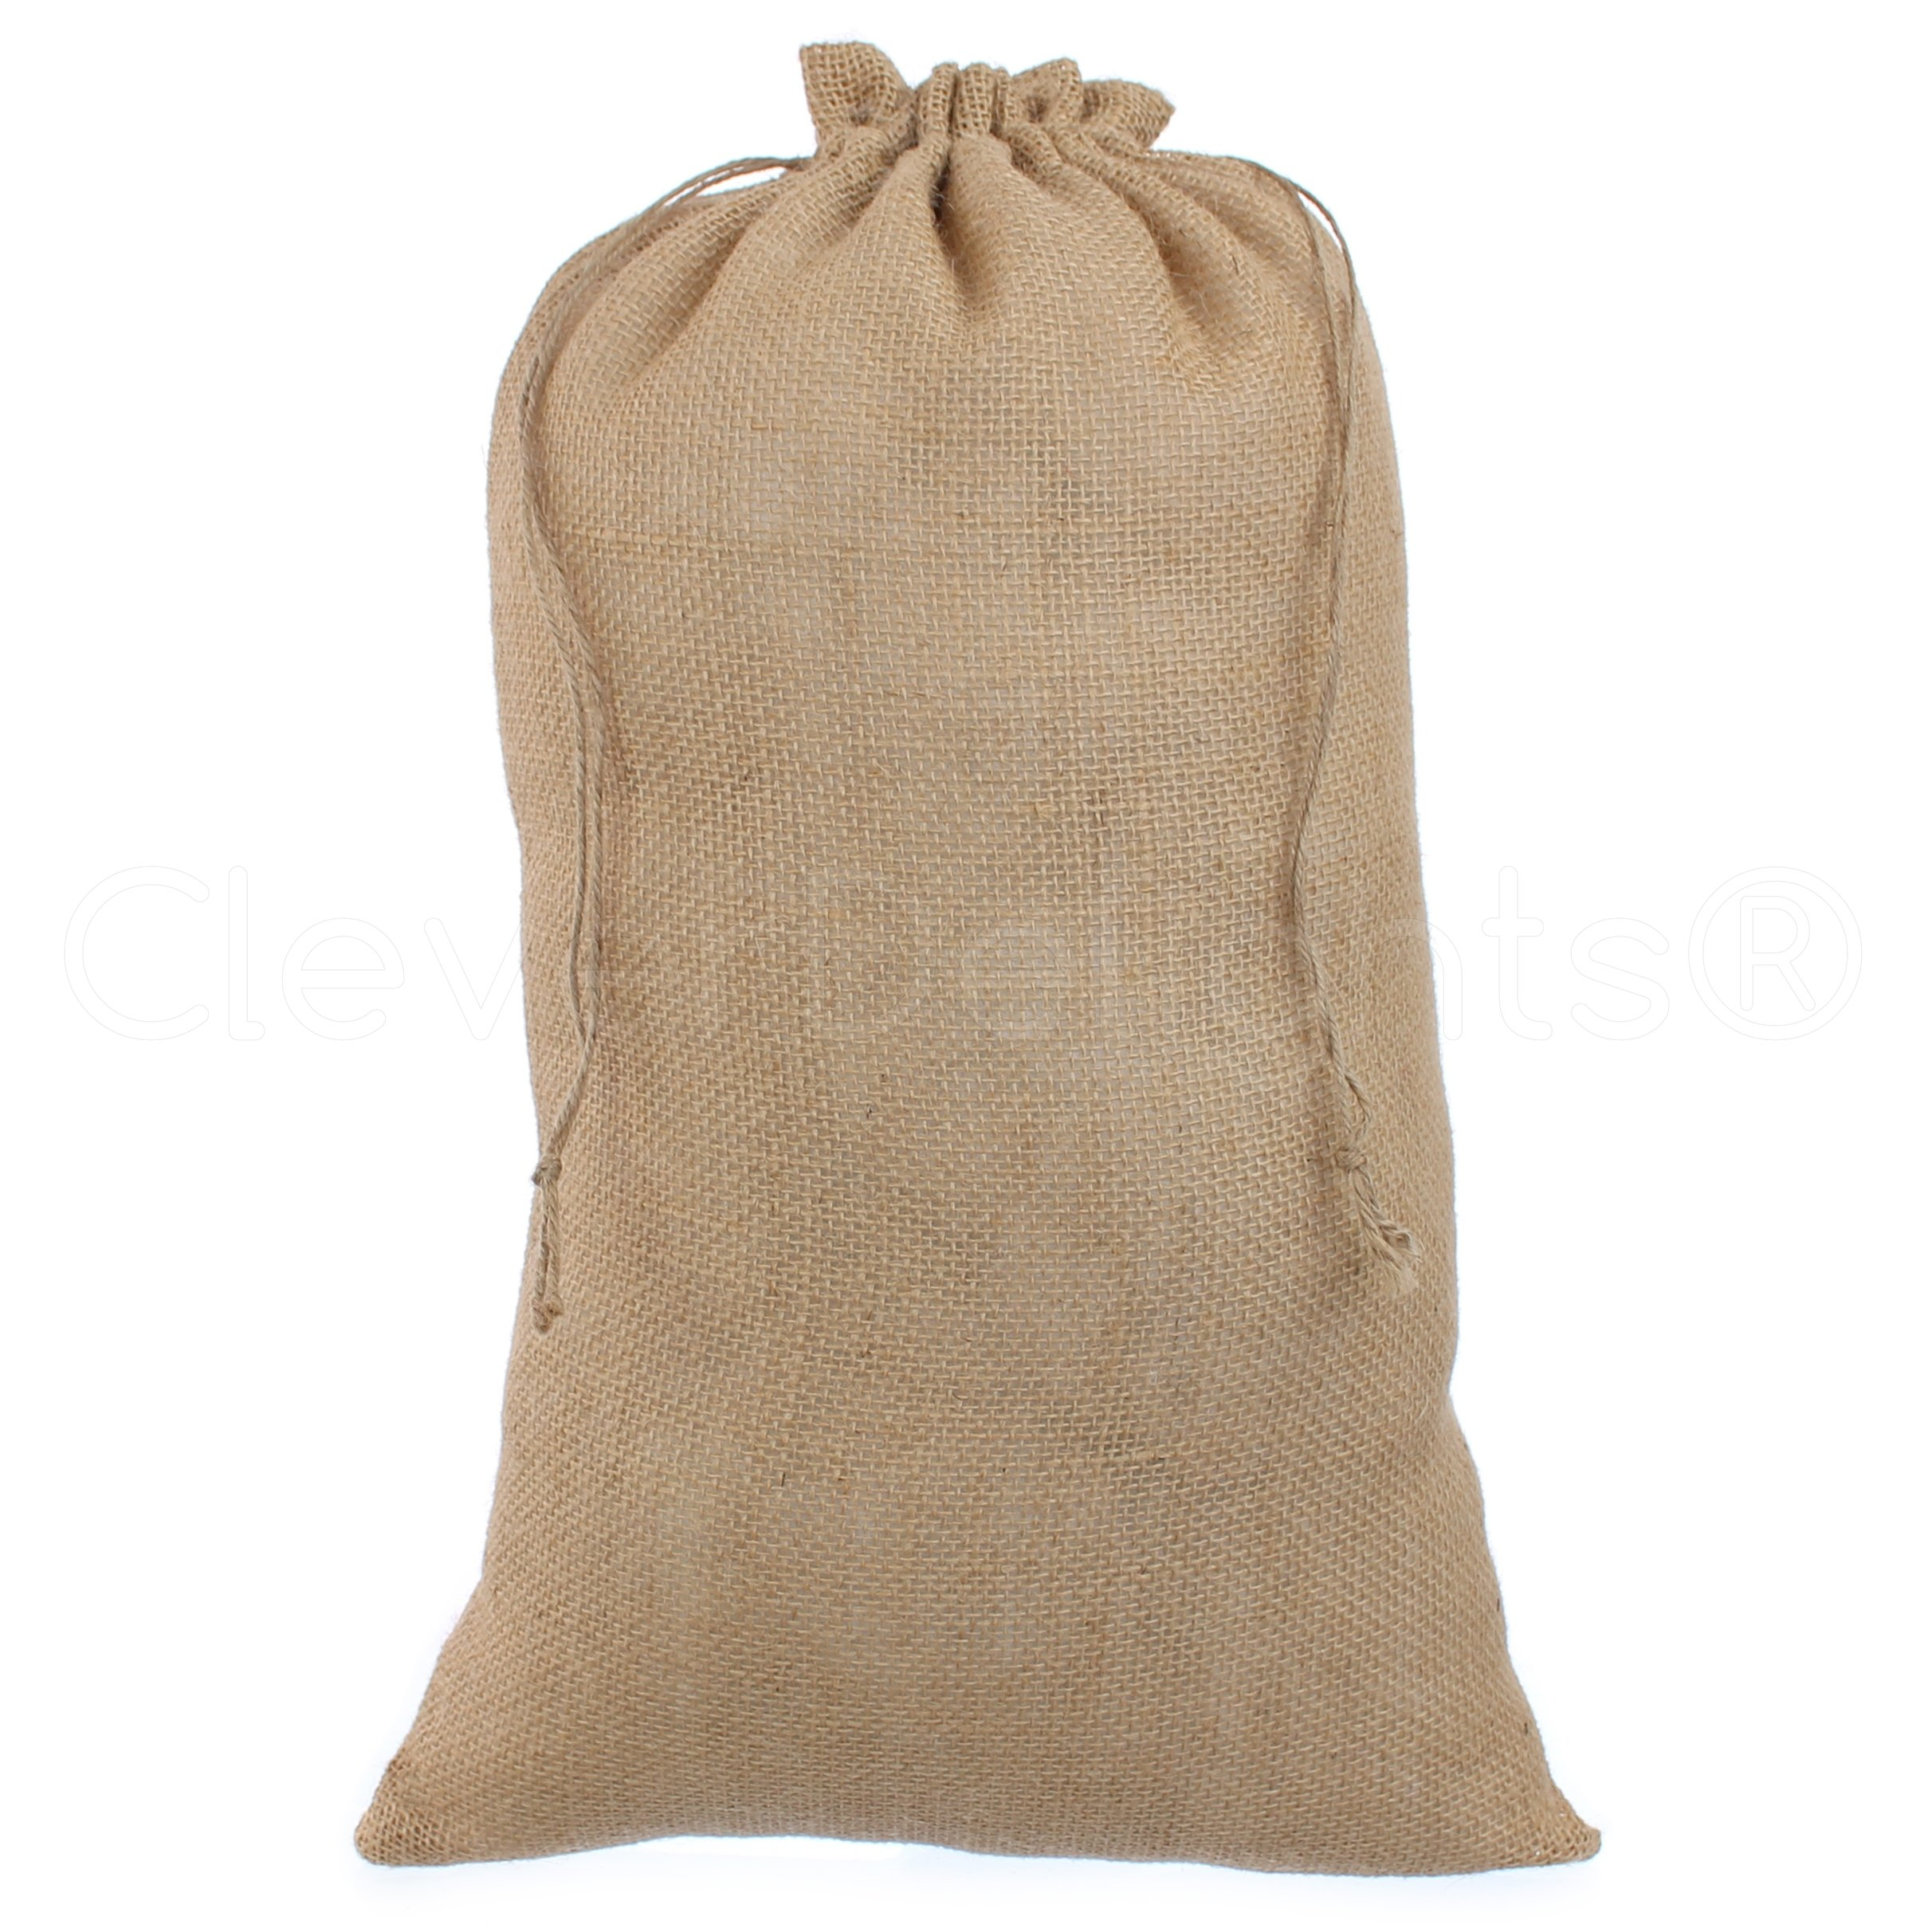 CleverDelights 12'' x 20'' Burlap Bags with Natural Jute Drawstring - 6 Pack - Large Burlap Pouch Sack Bag - 12x20 inch